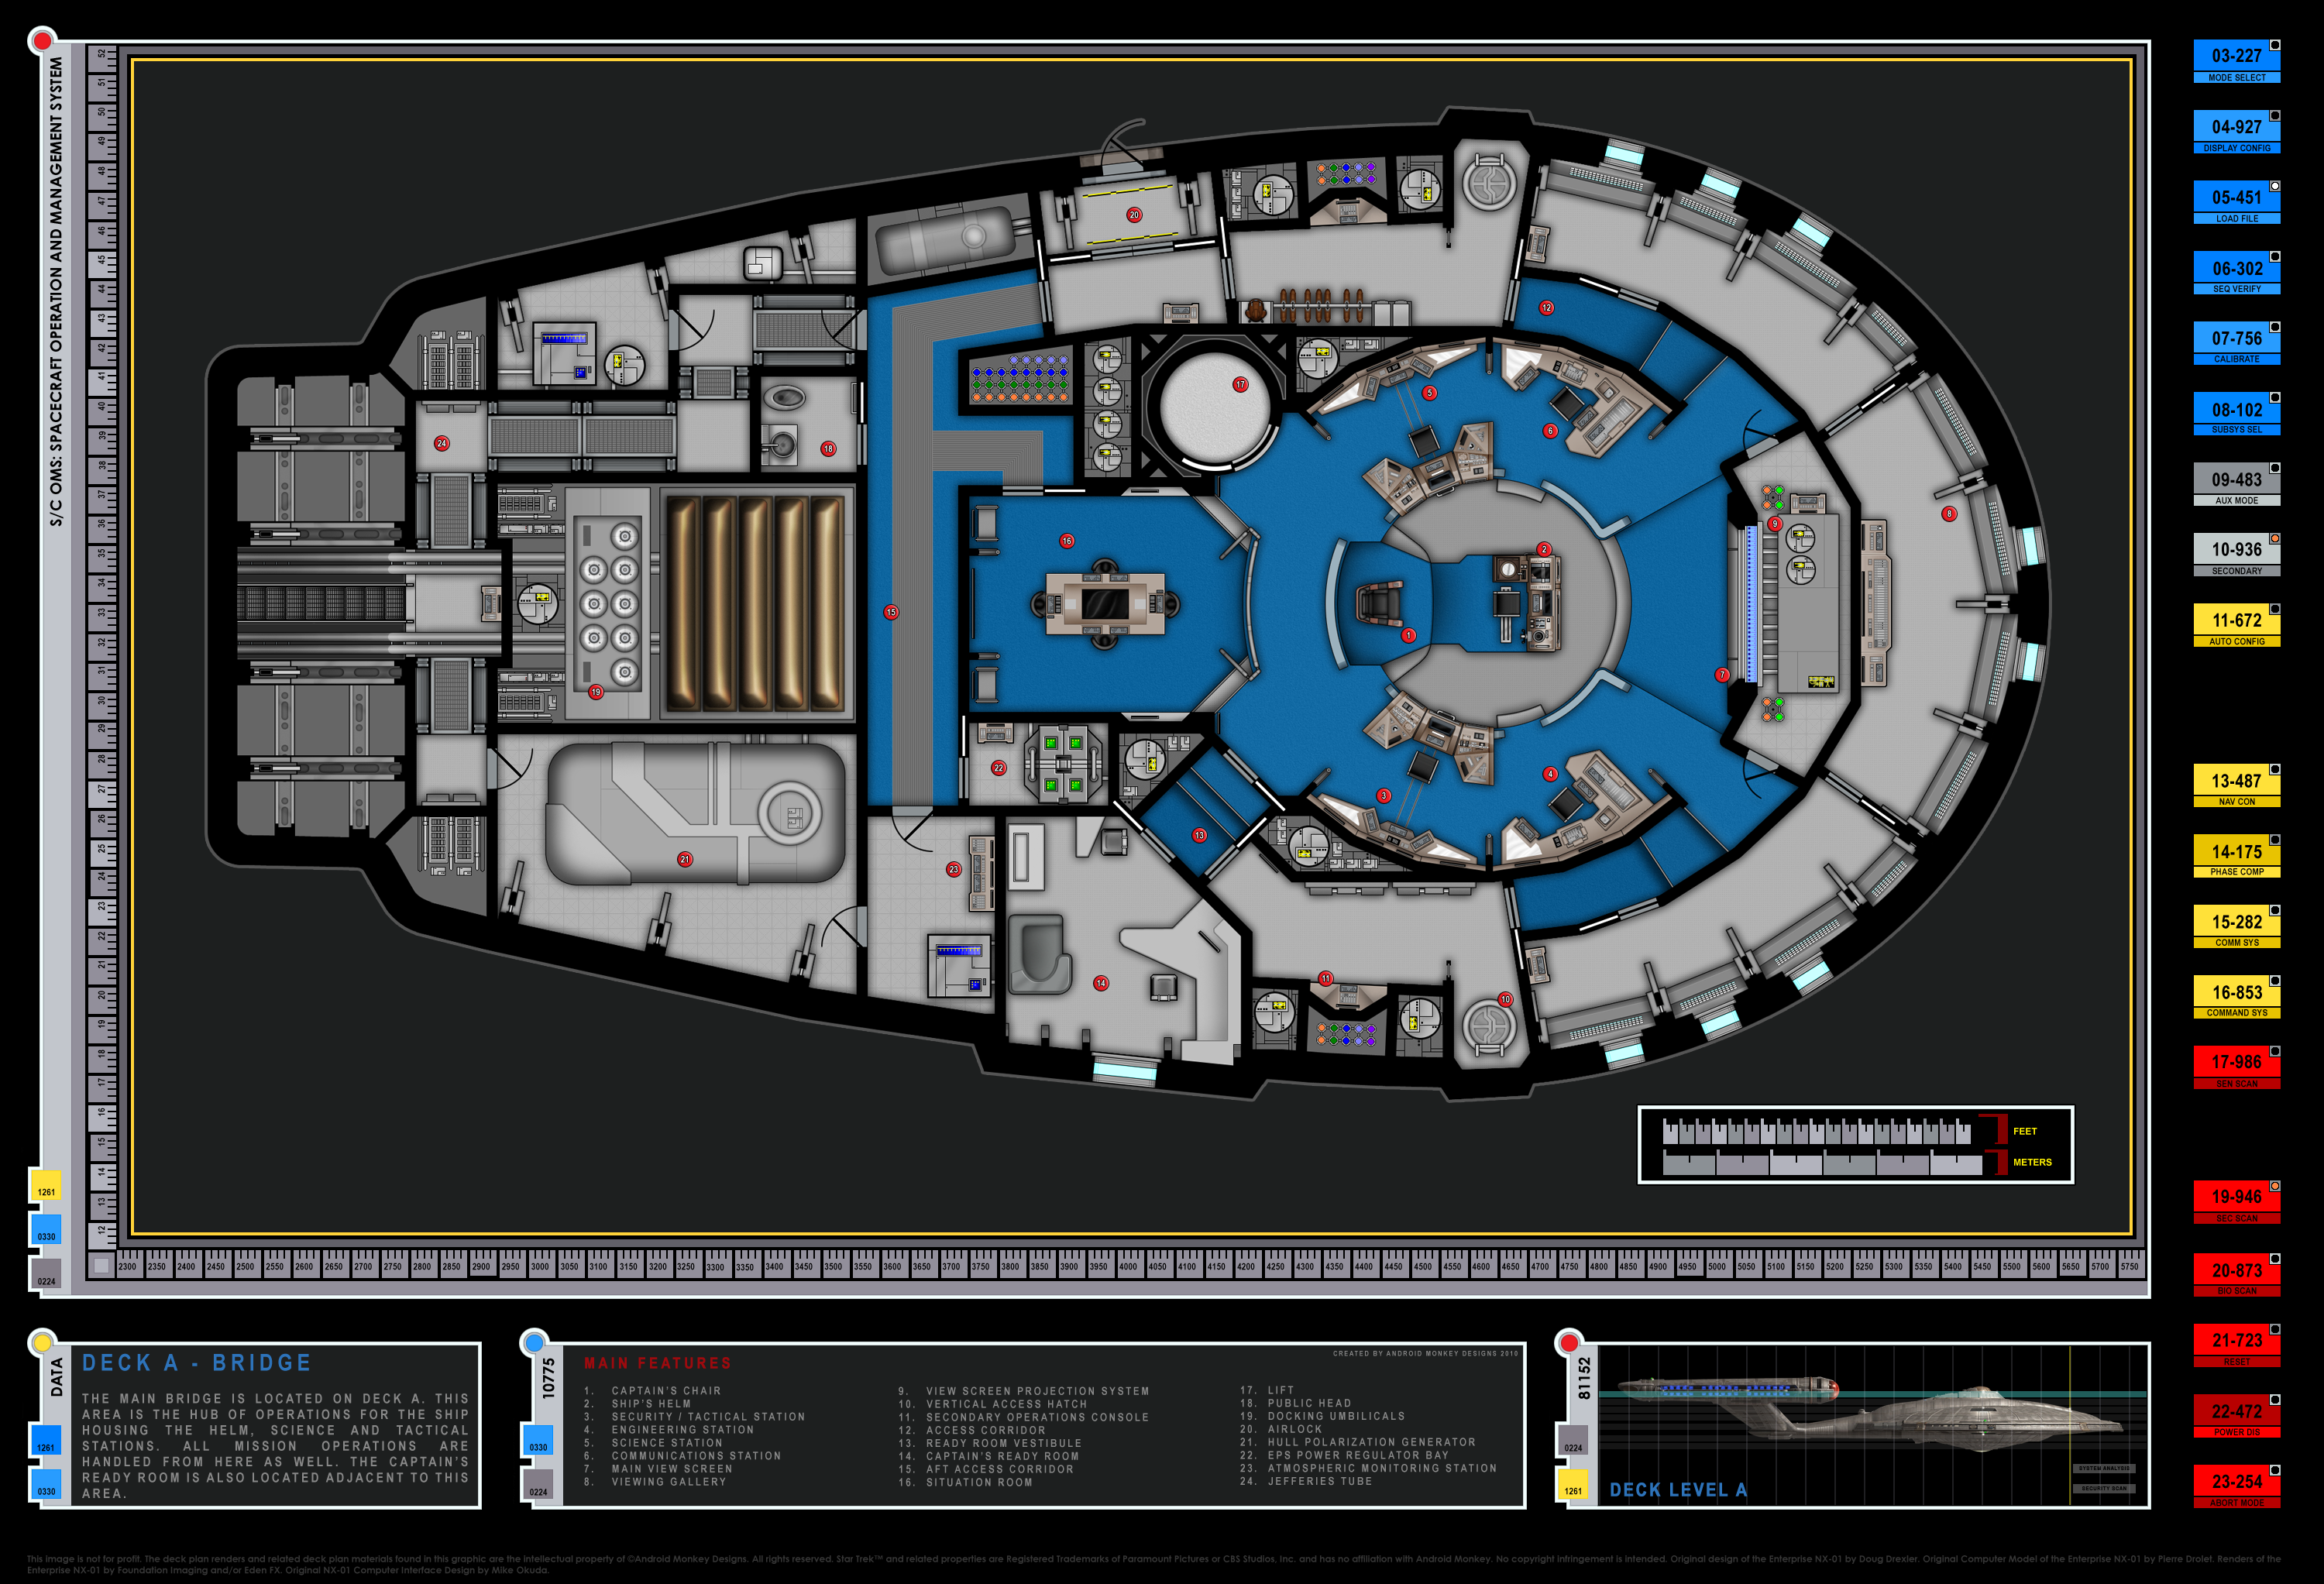 Enterprise NX-01 Download Page on enterprise-e schematics, robotech schematics, gilso star trek schematics, uss vengeance schematics, uss excelsior schematics, uss ncc-1701 d, star trek voyager schematics, enterprise-j schematics, uss voyager specifications, uss voyager lcars, ncc 1701 e schematics, ds9 schematics, new enterprise ncc-1701 schematics, uss voyager schematics, star trek enterprise schematics, uss defiant schematics, uss reliant schematics, star trek lcars schematics, enterprise nx-01 schematics, enterprise-d schematics,